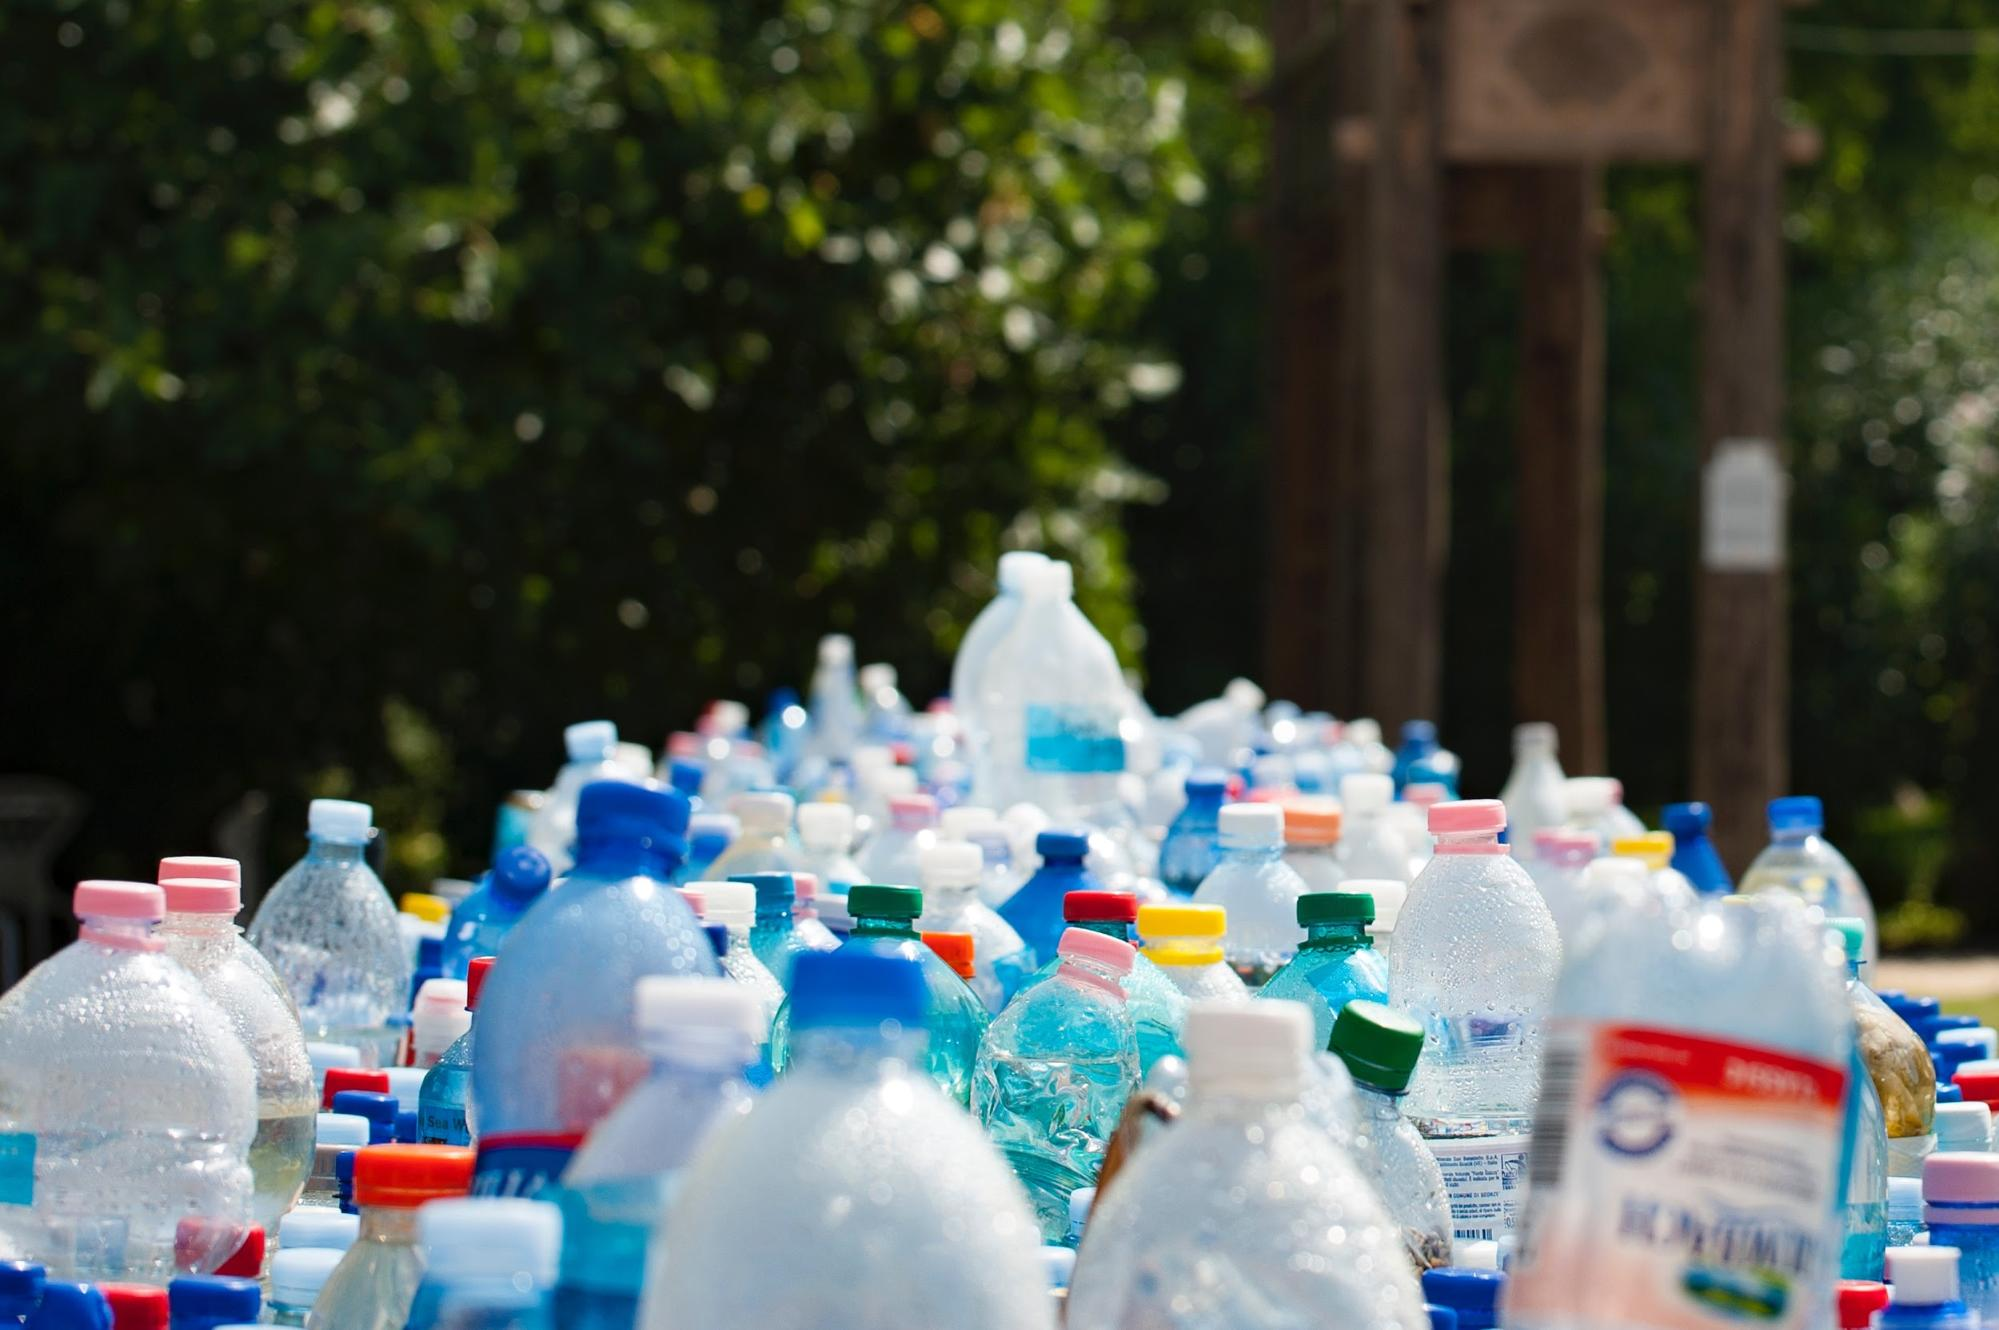 Plastic bottles are lined up and ready to go in the recycling bin.